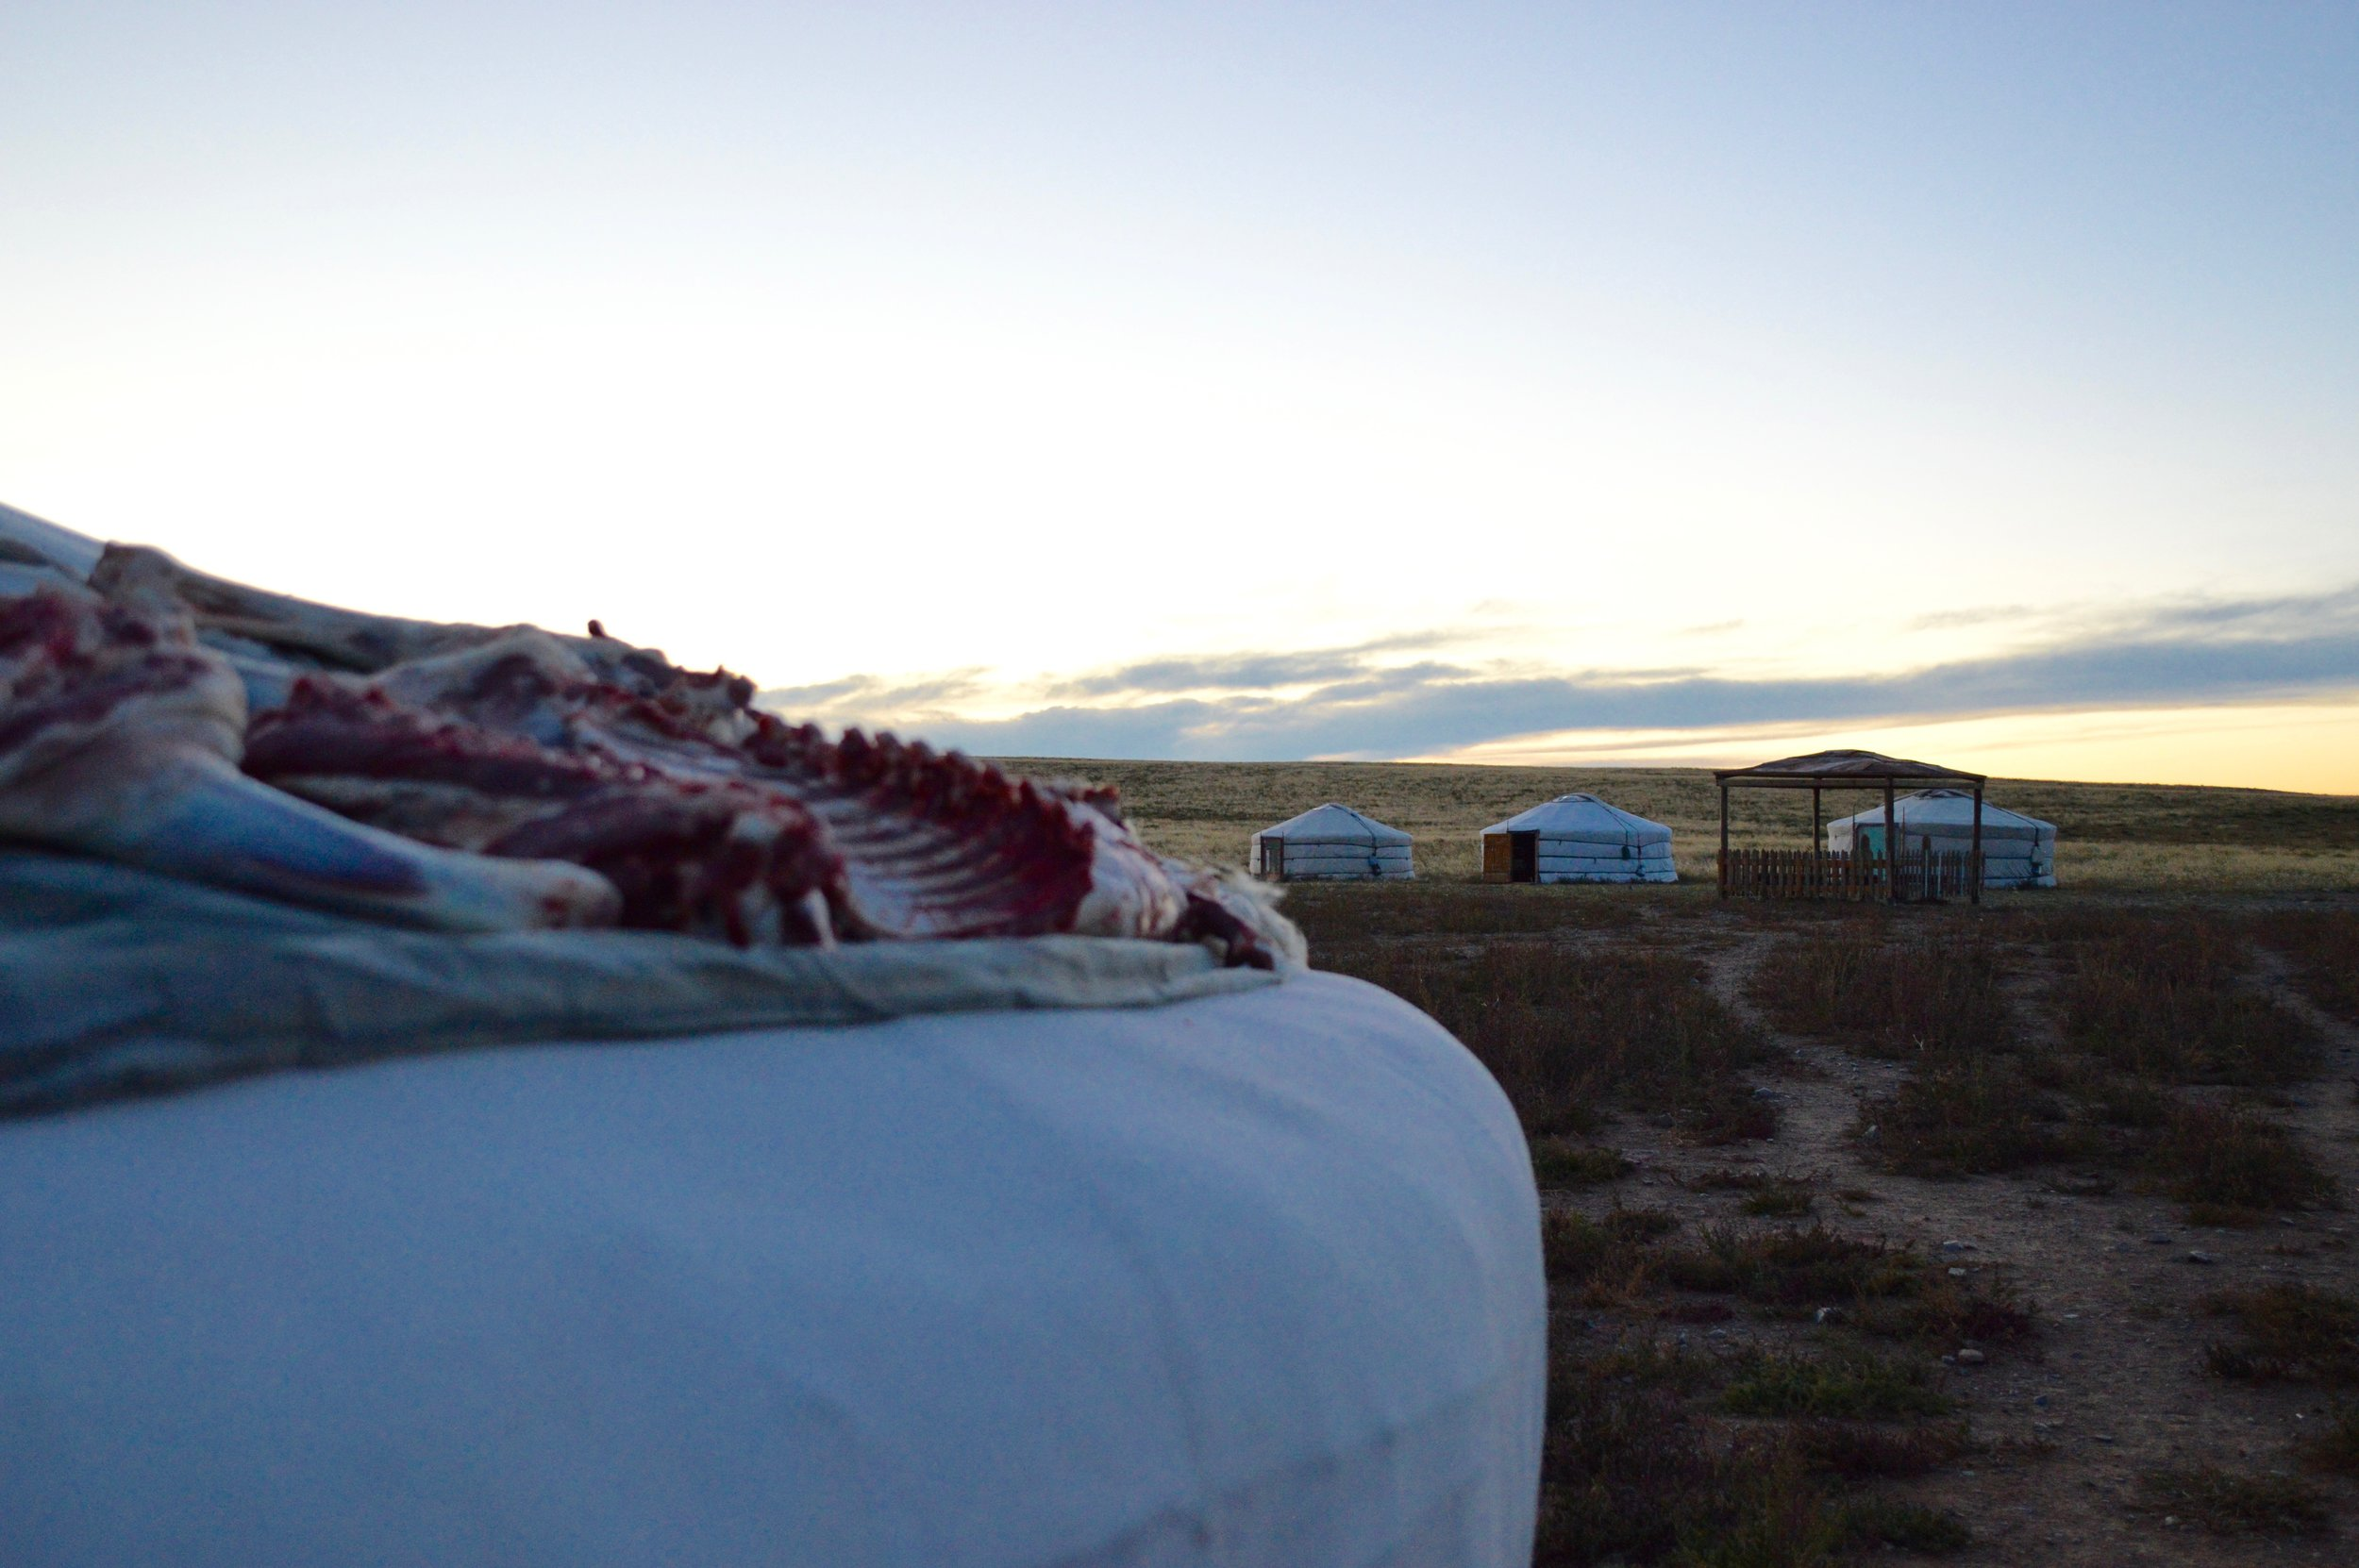 Pieces of sheep meat on top of the ger (yurt)